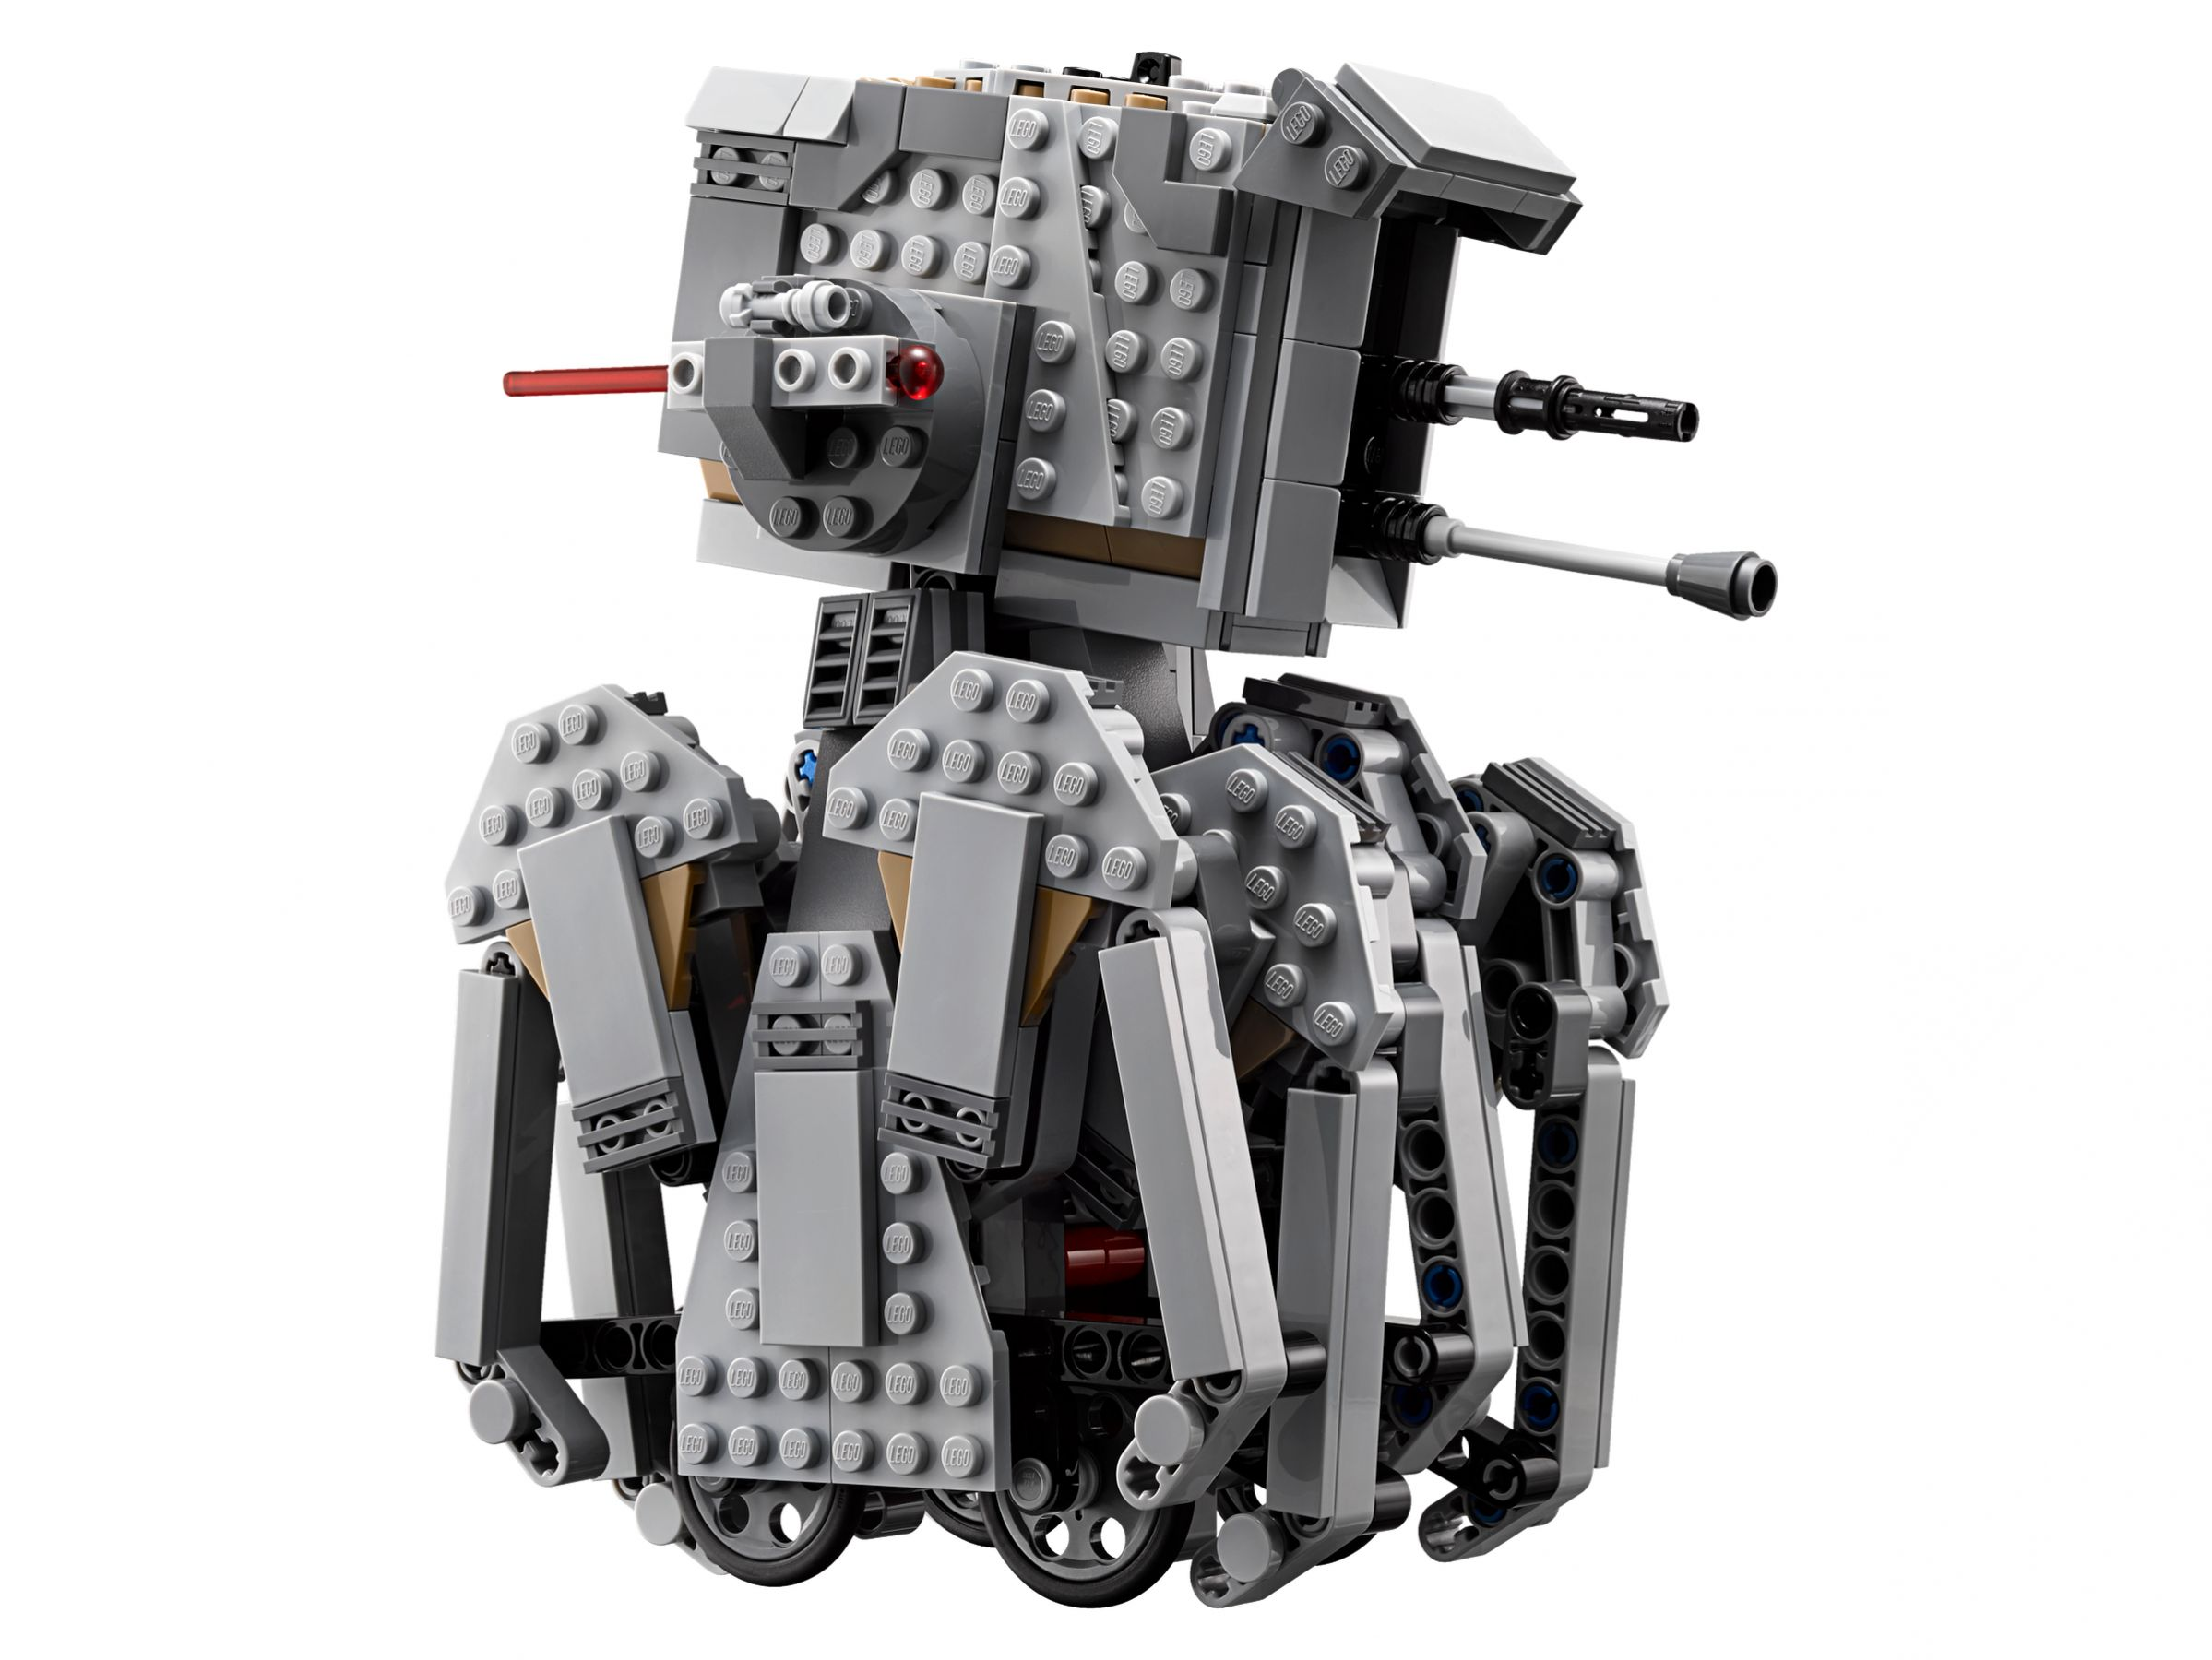 LEGO Star Wars 75177 First Order Heavy Scout Walker™ LEGO_75177_alt4.jpg